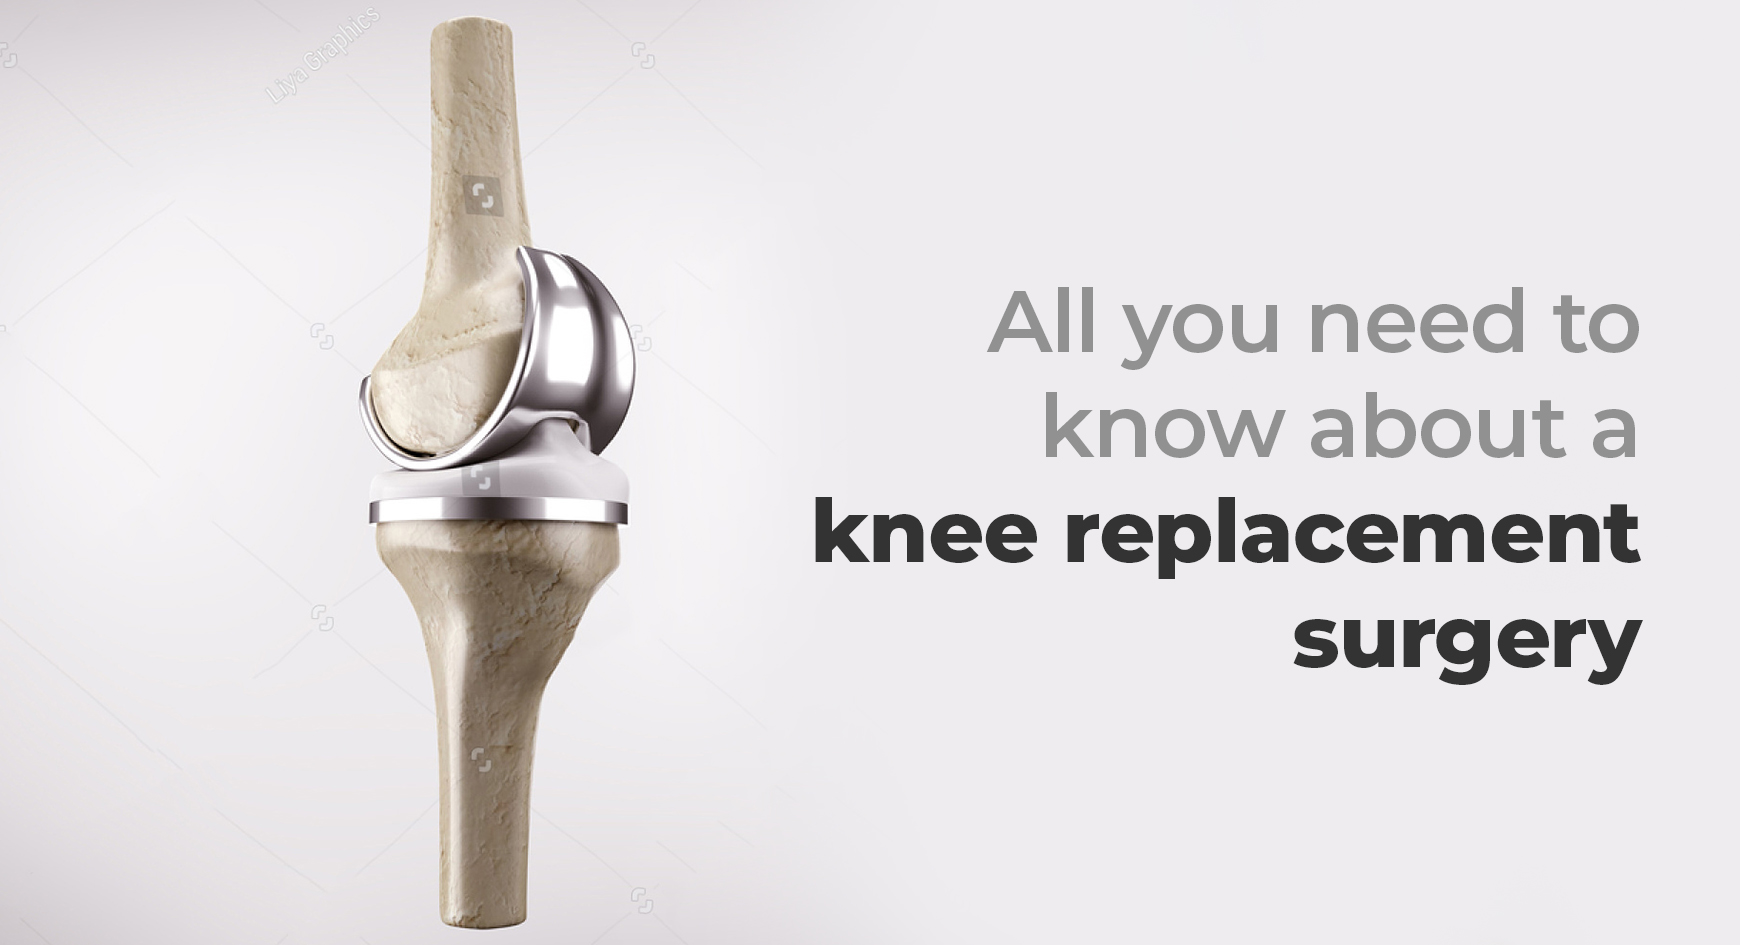 All you need to know about a knee replacement surgery